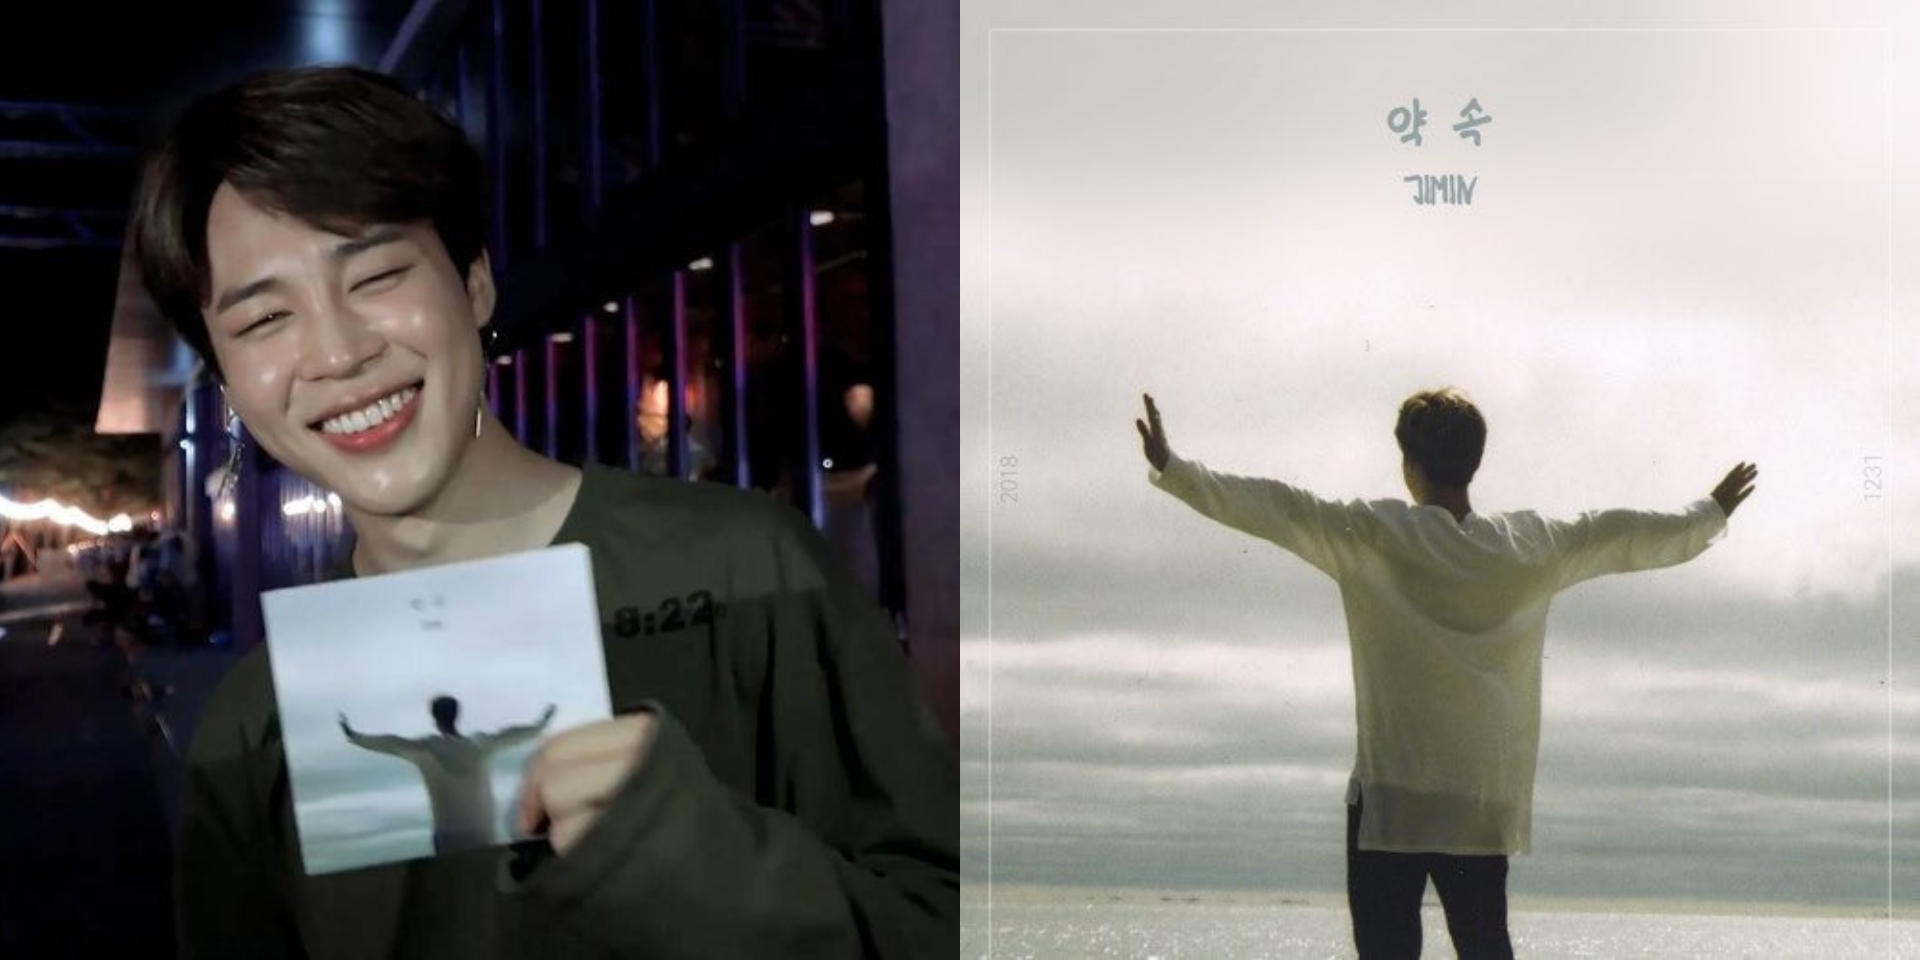 BTS' Jimin's 'Promise' is now the most-streamed song on SoundCloud